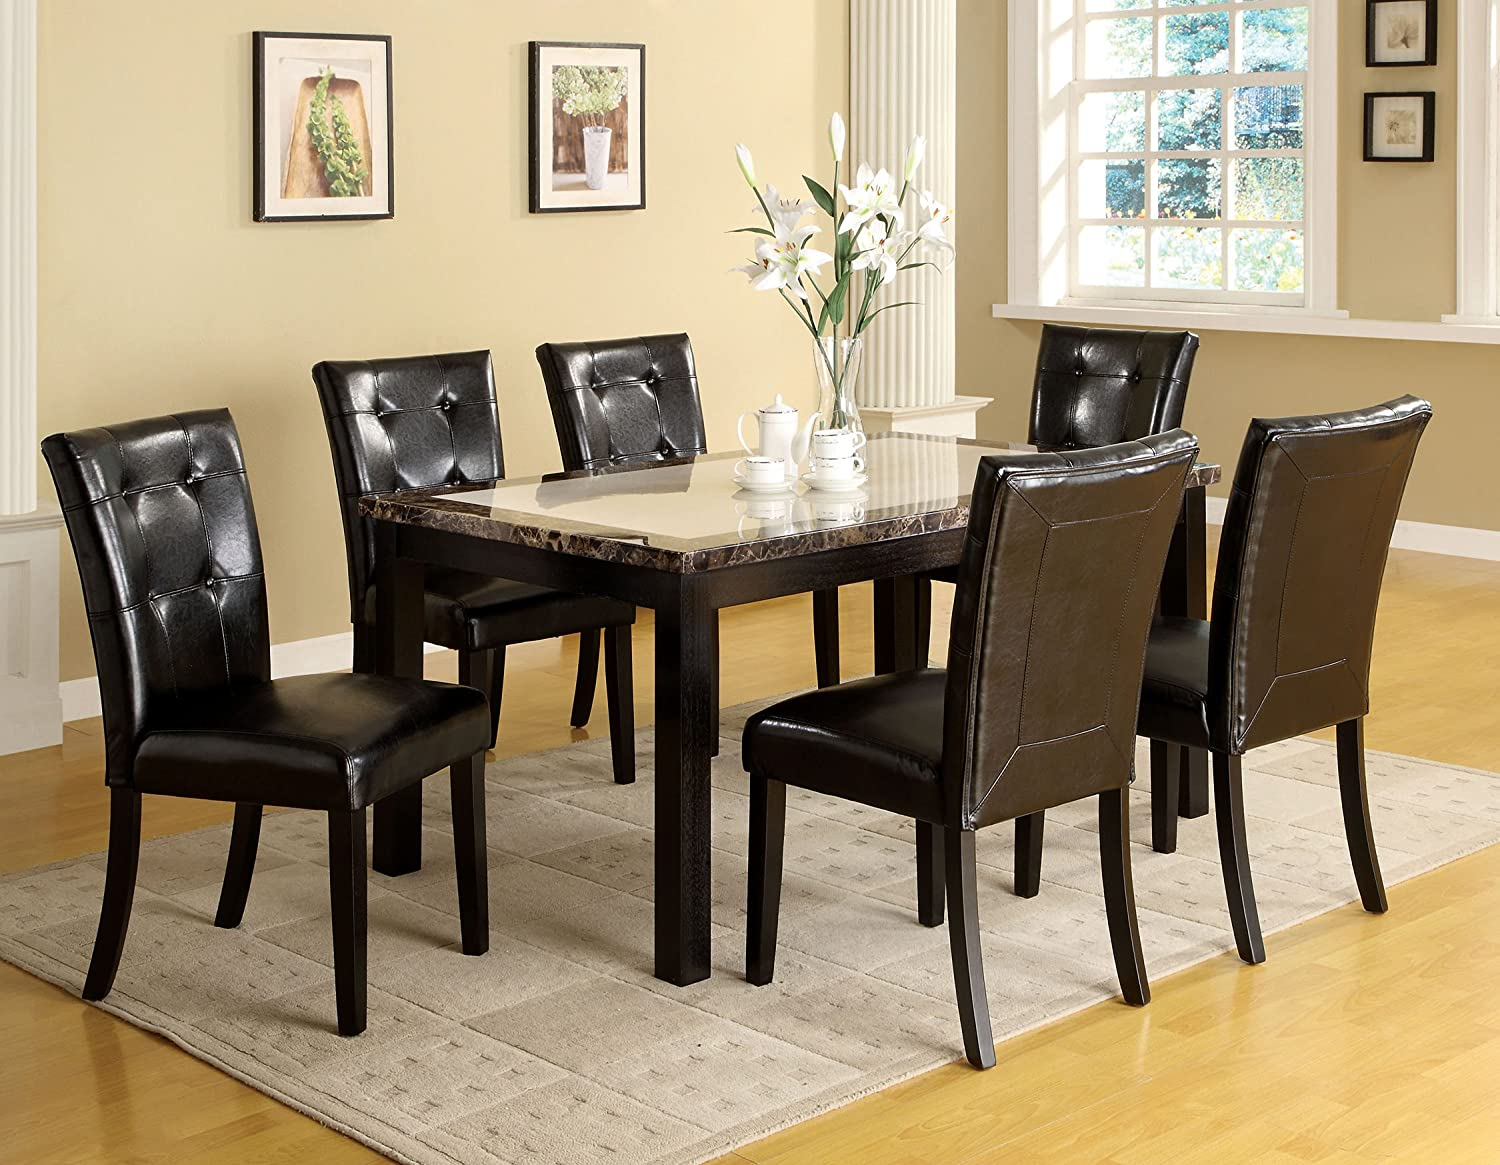 Amazon.com   Furniture Of America Taveren Faux Marble Dining Table, Black  Finish   Tables